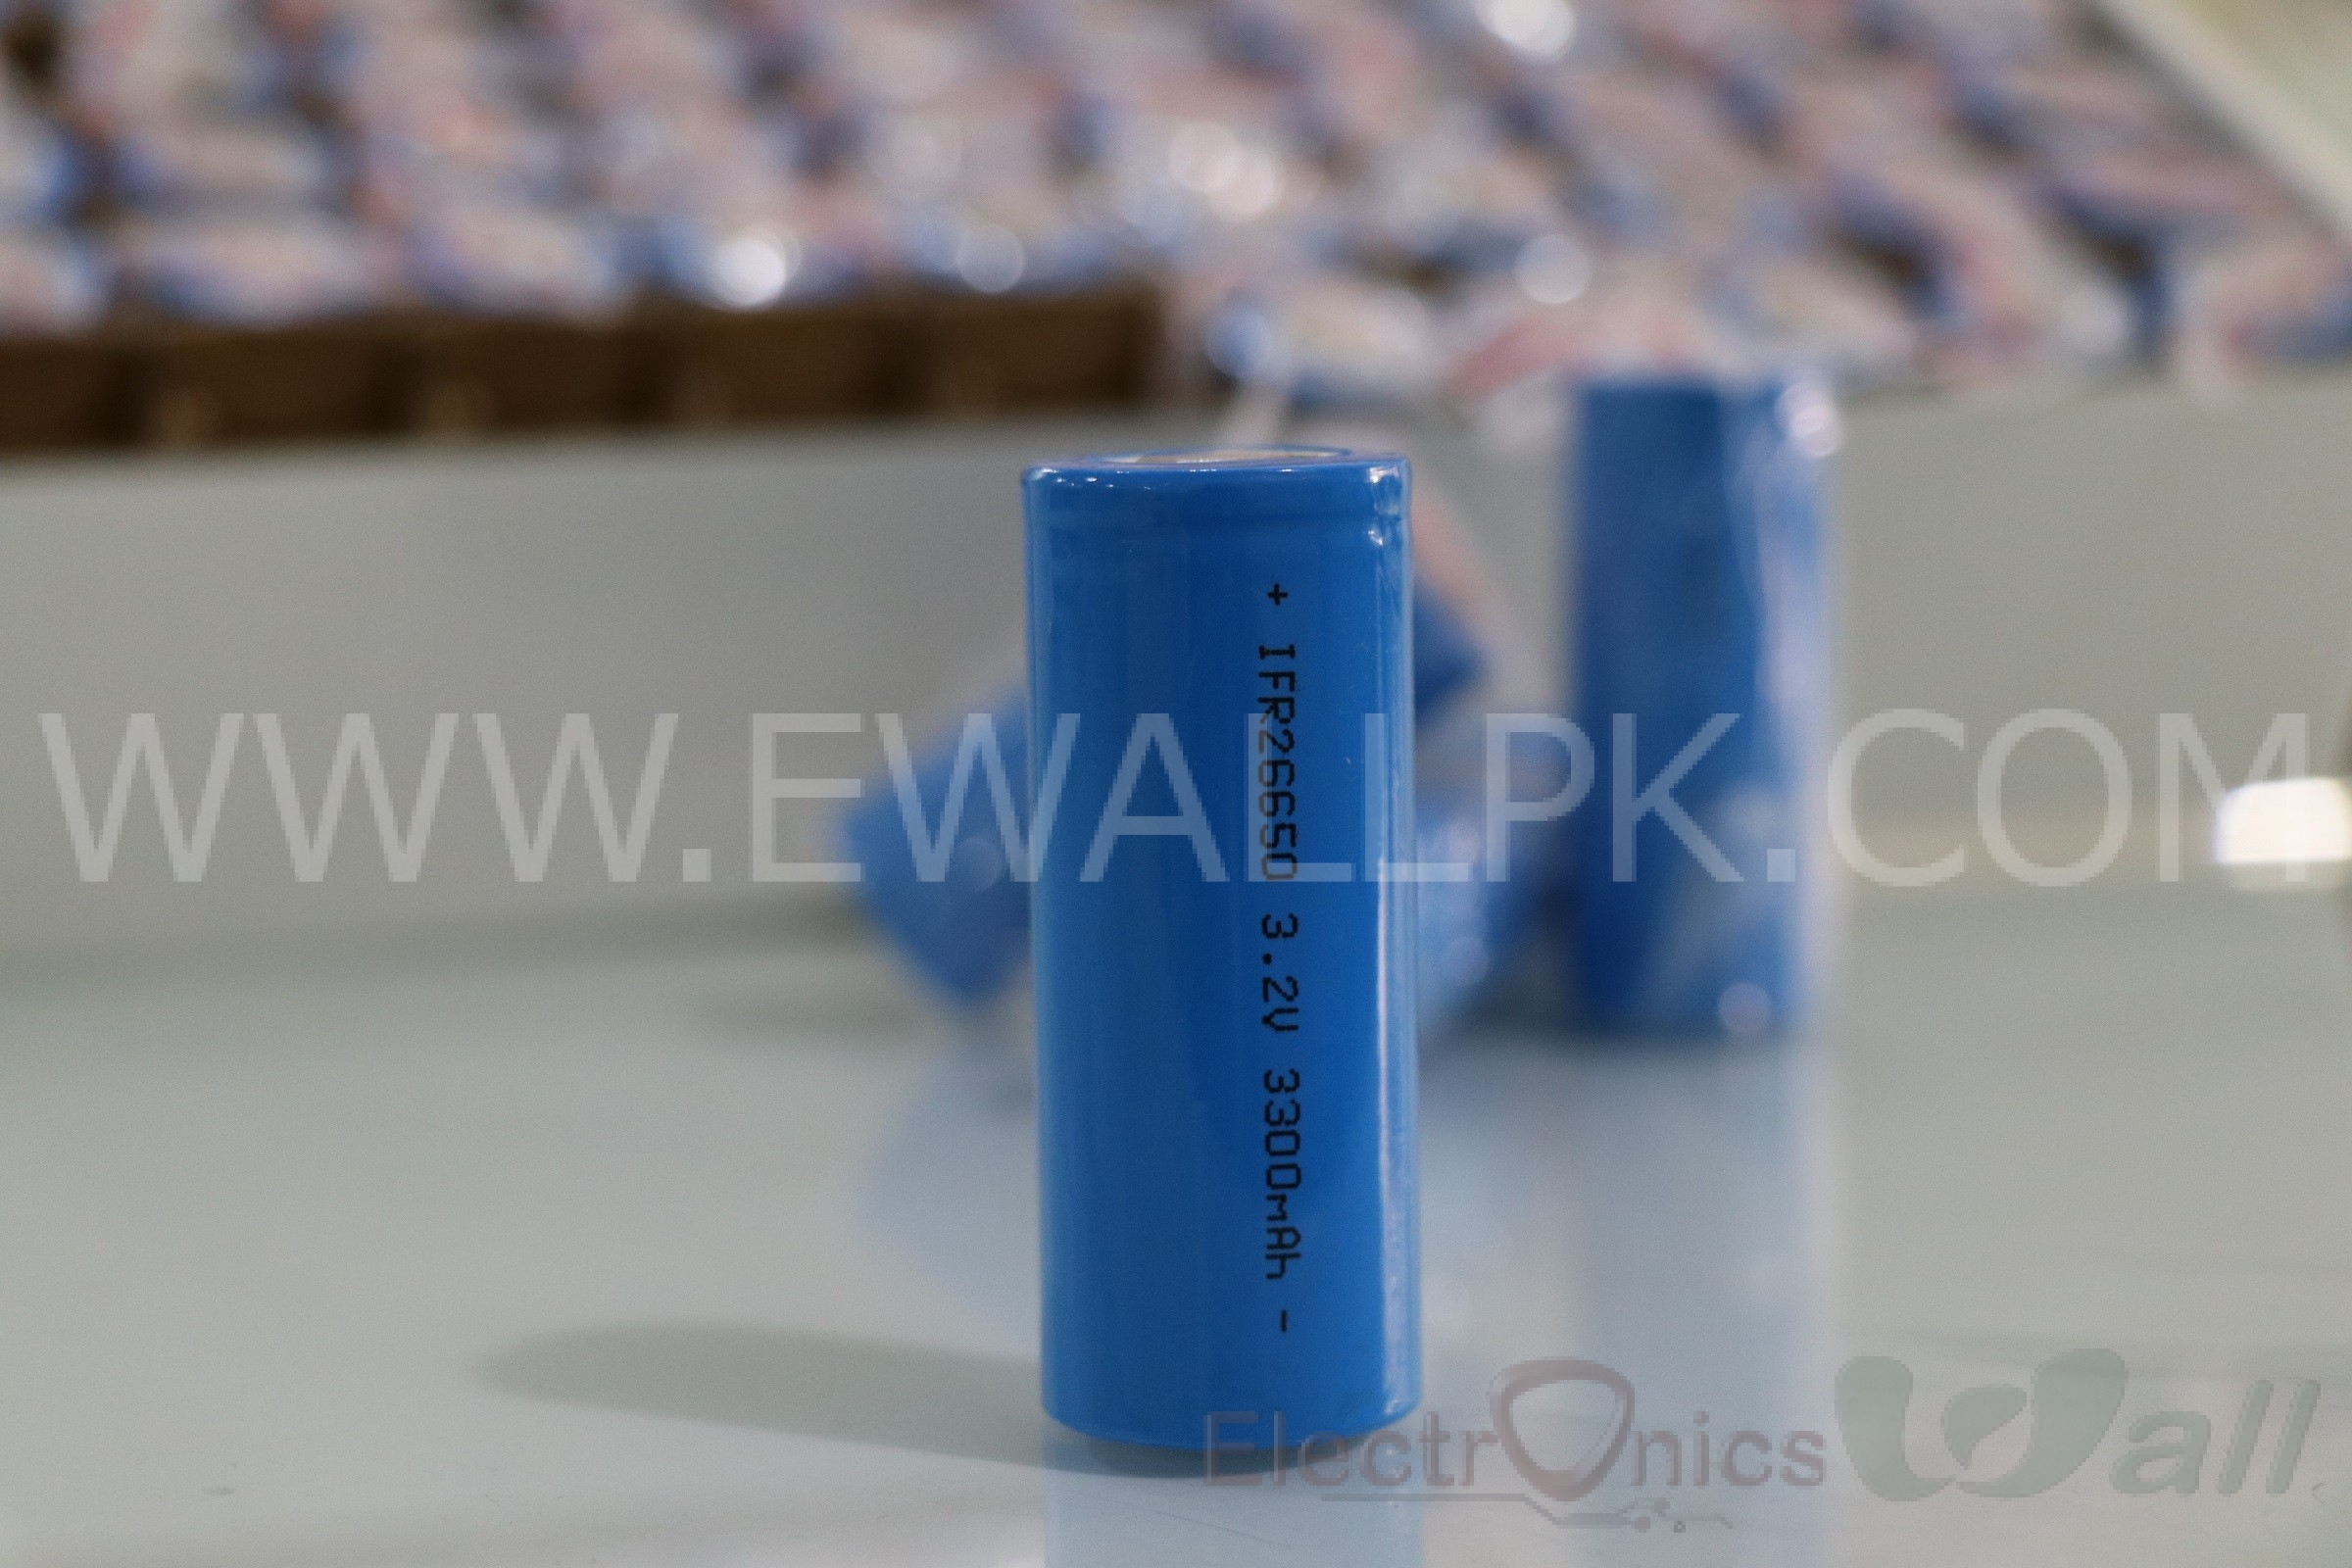 3.2V 3300mAh LiFePO4 Rechargeable battery 26650 Flat Top cell (Original Highest Quality)